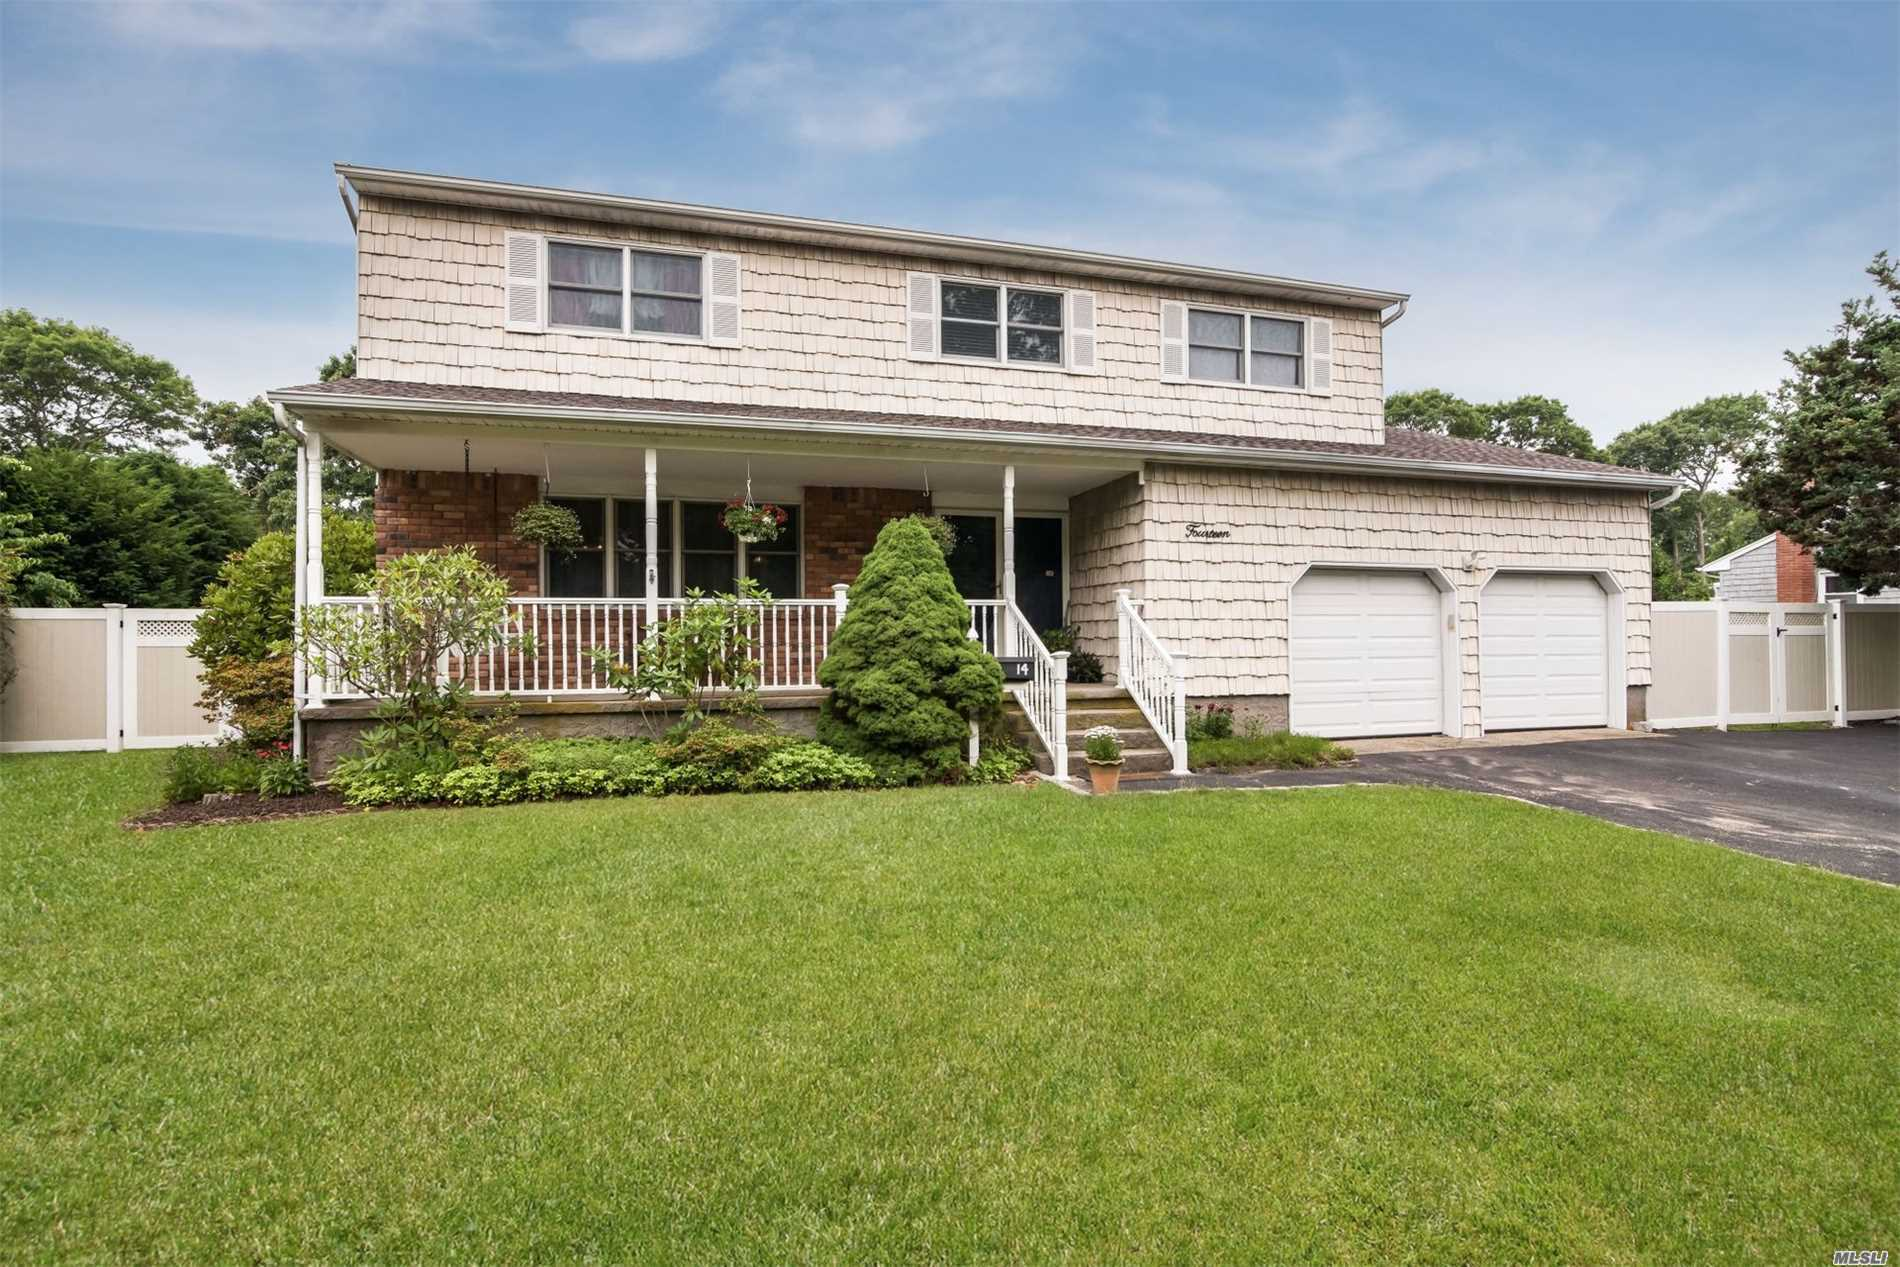 14 Fairway Dr - Bellport, New York